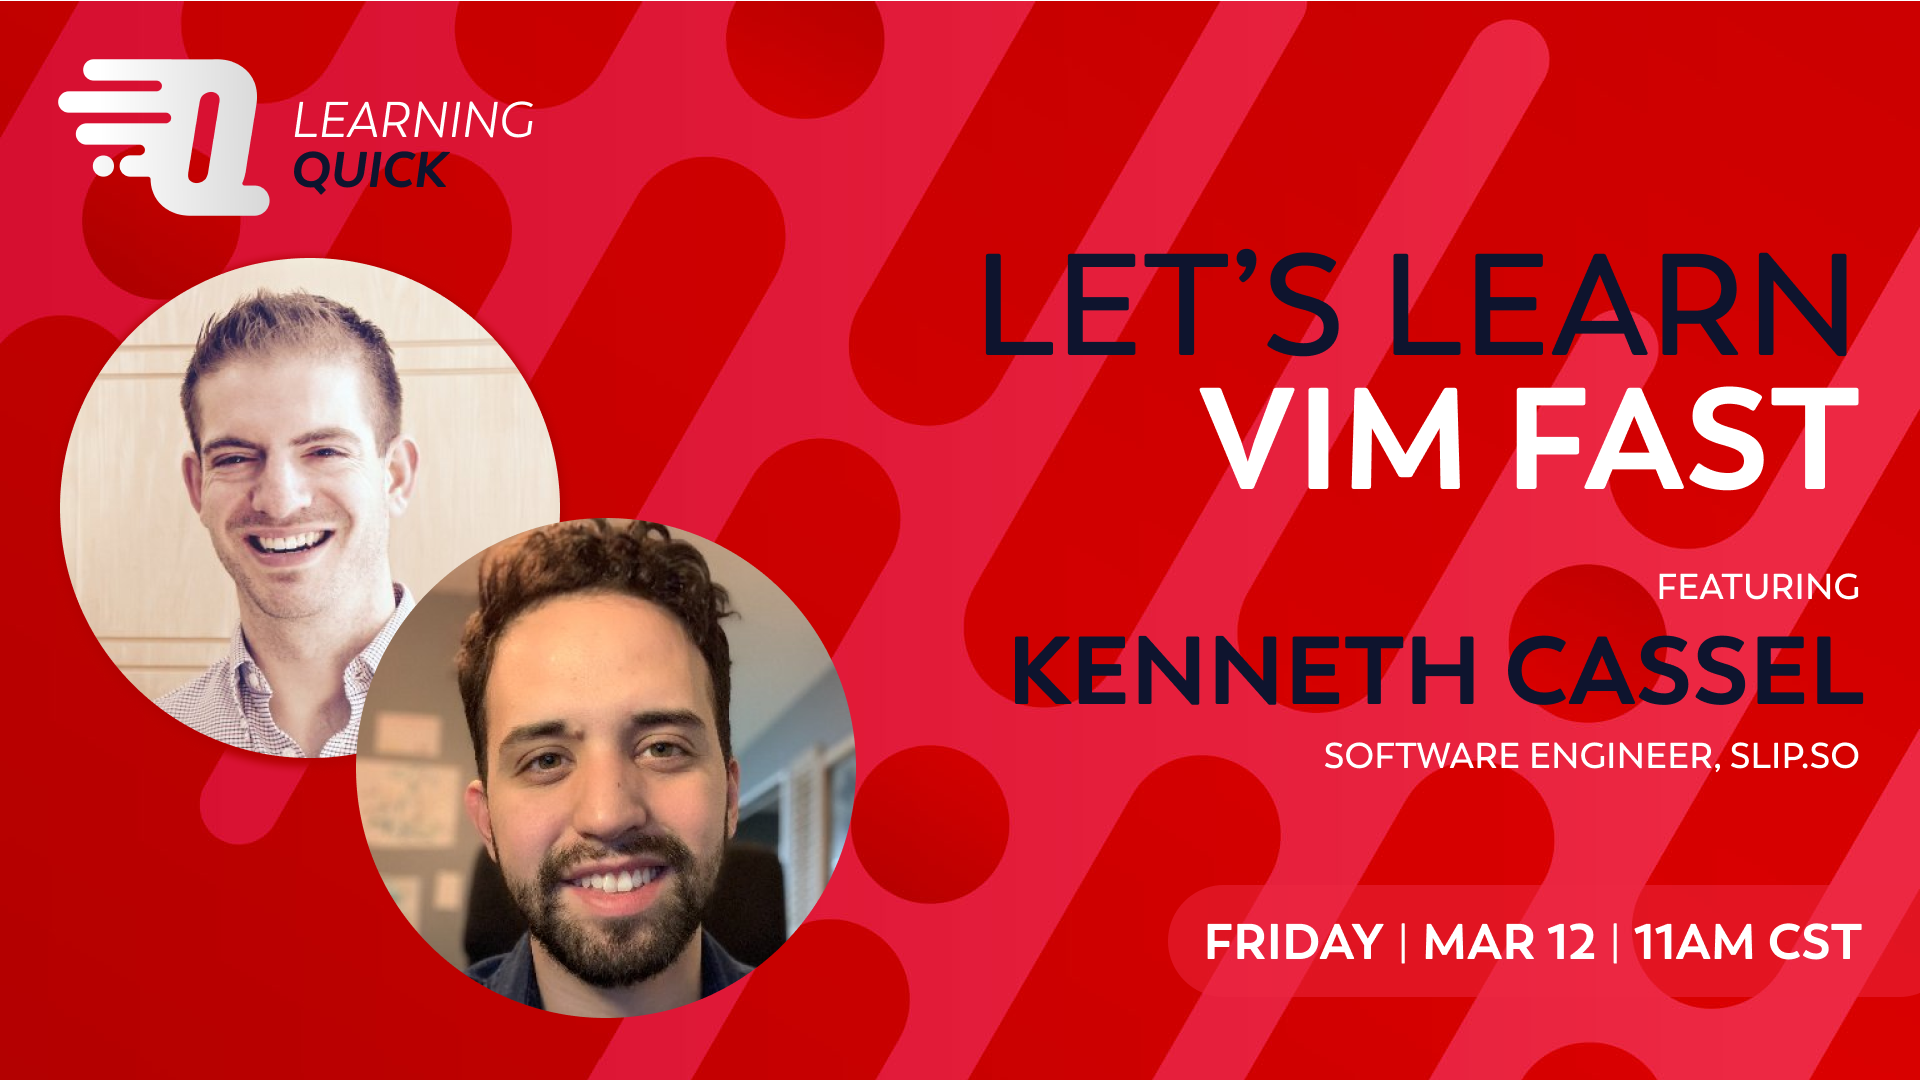 Let's Learn VIM Fast with Kenneth Cassel